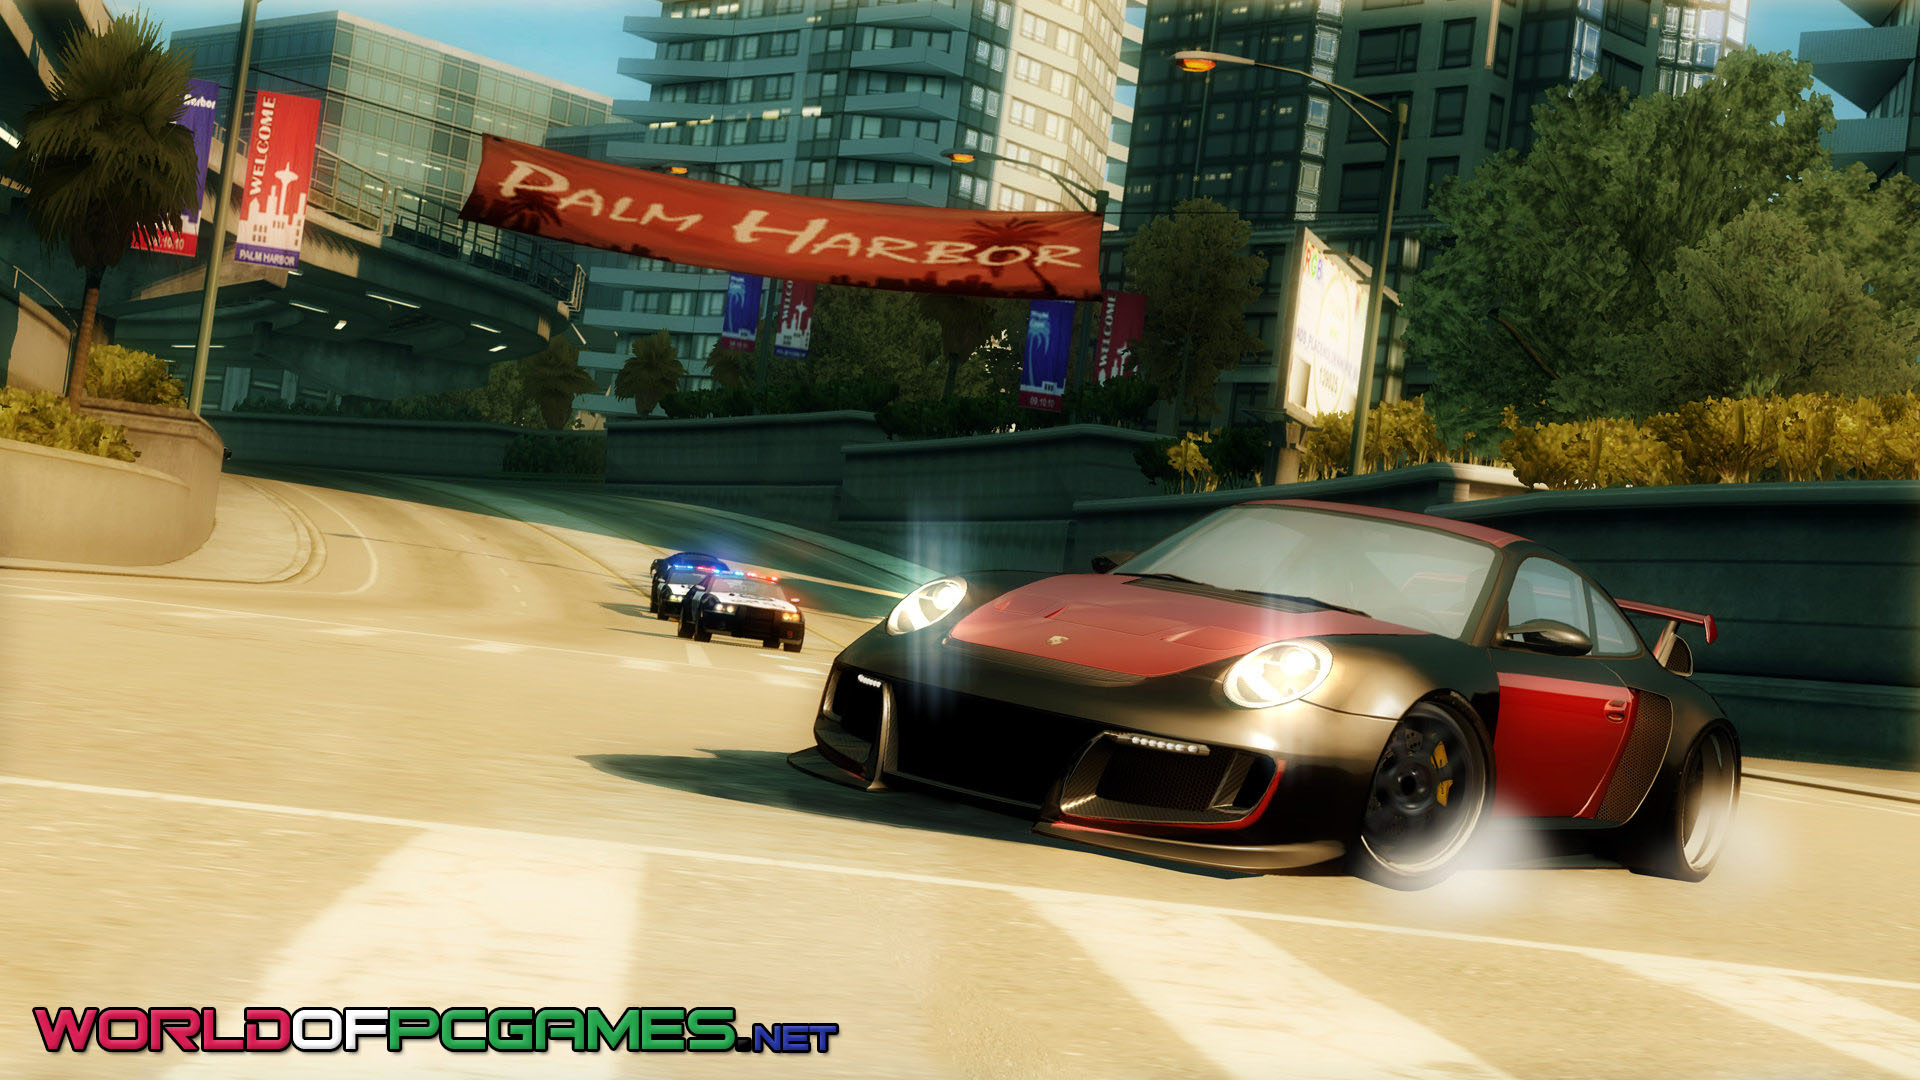 Need For Speed Undercover Free Download By Worldofpcgames.net